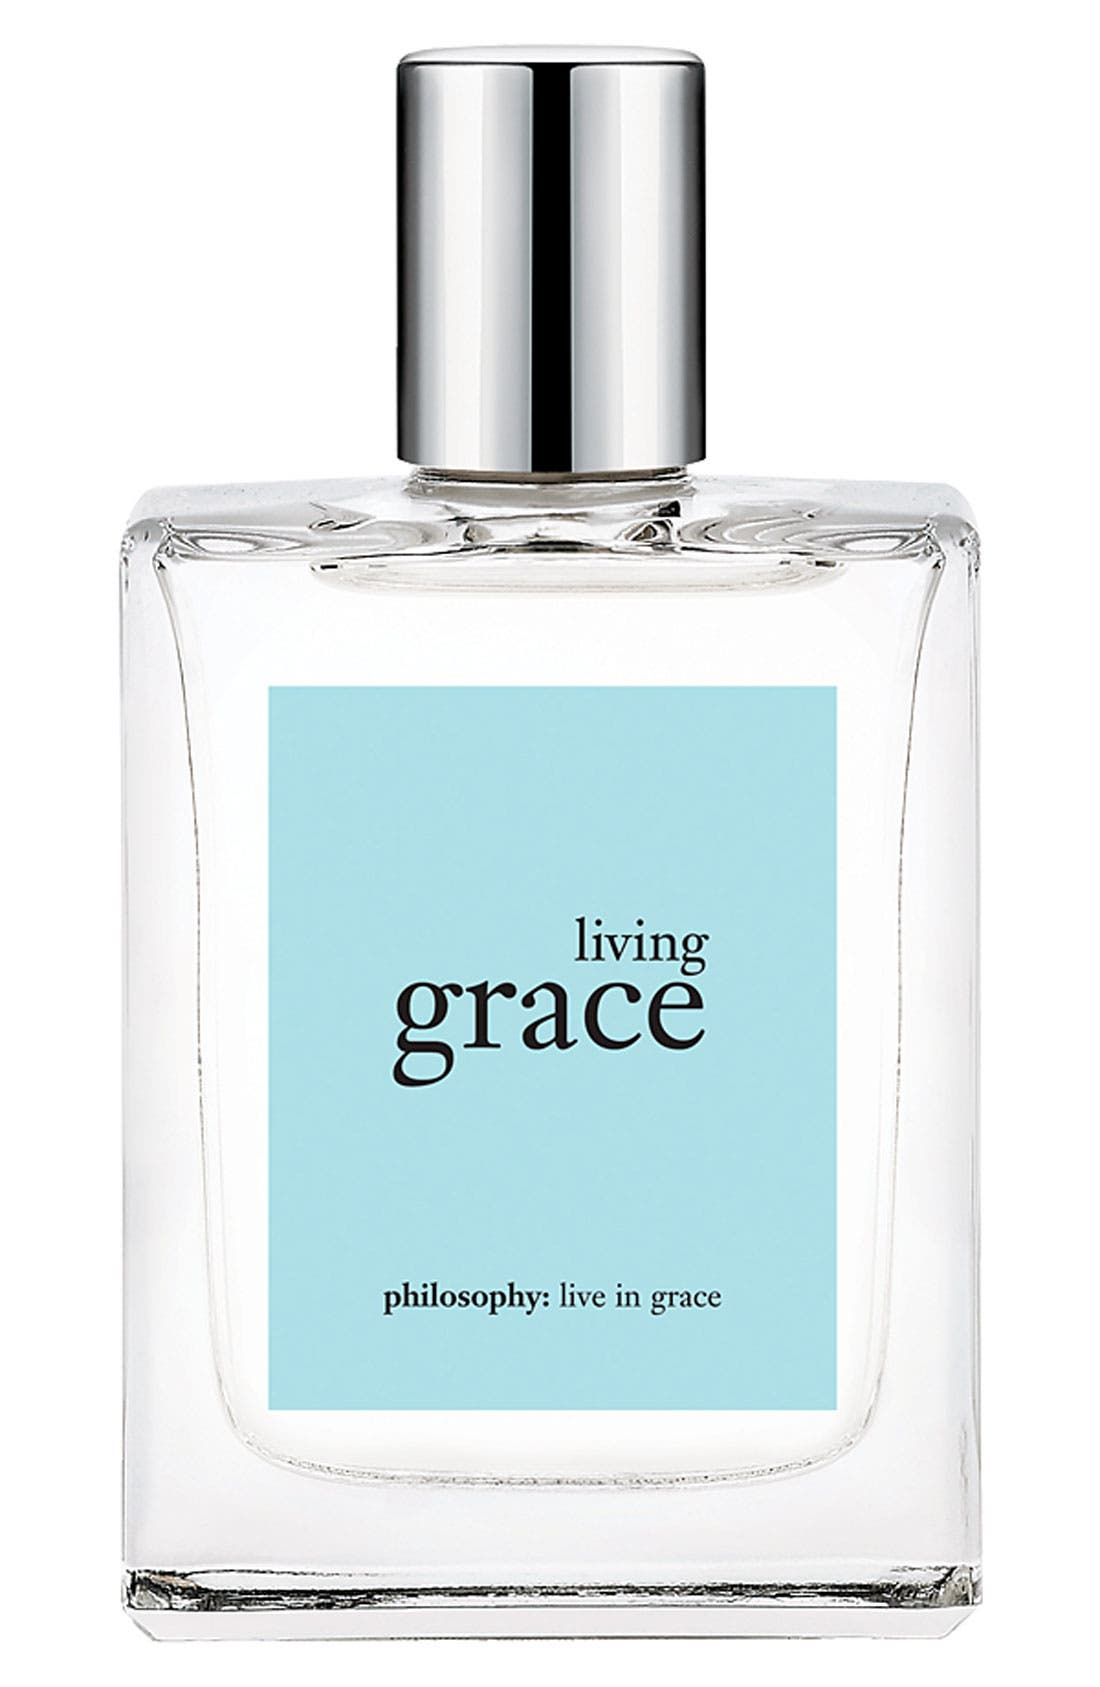 philosophy 'living grace' eau de toilette